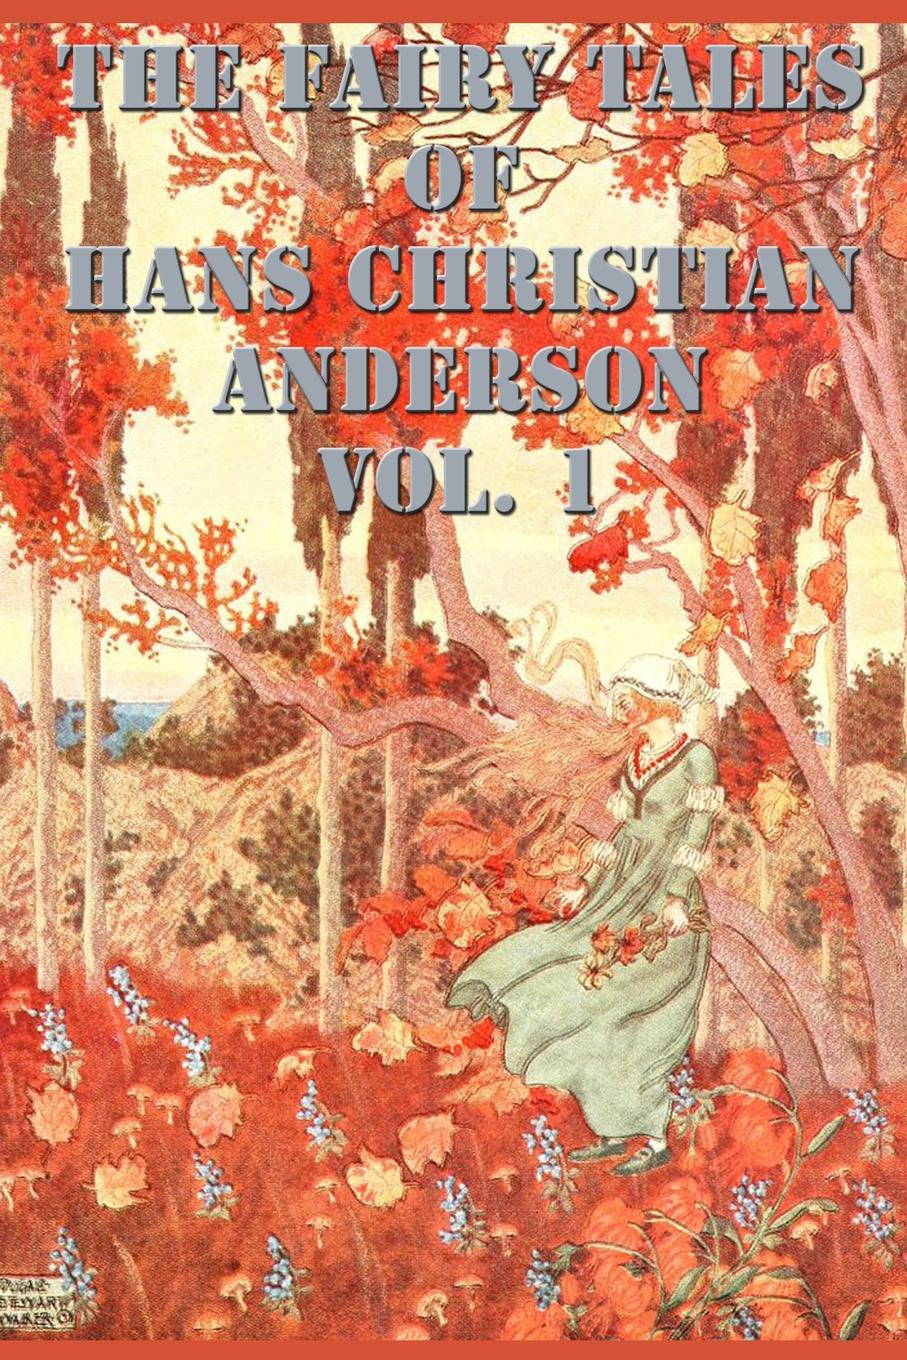 Hans Christian Anderson The Fairy Tales of Hans Christian Anderson Vol. 1